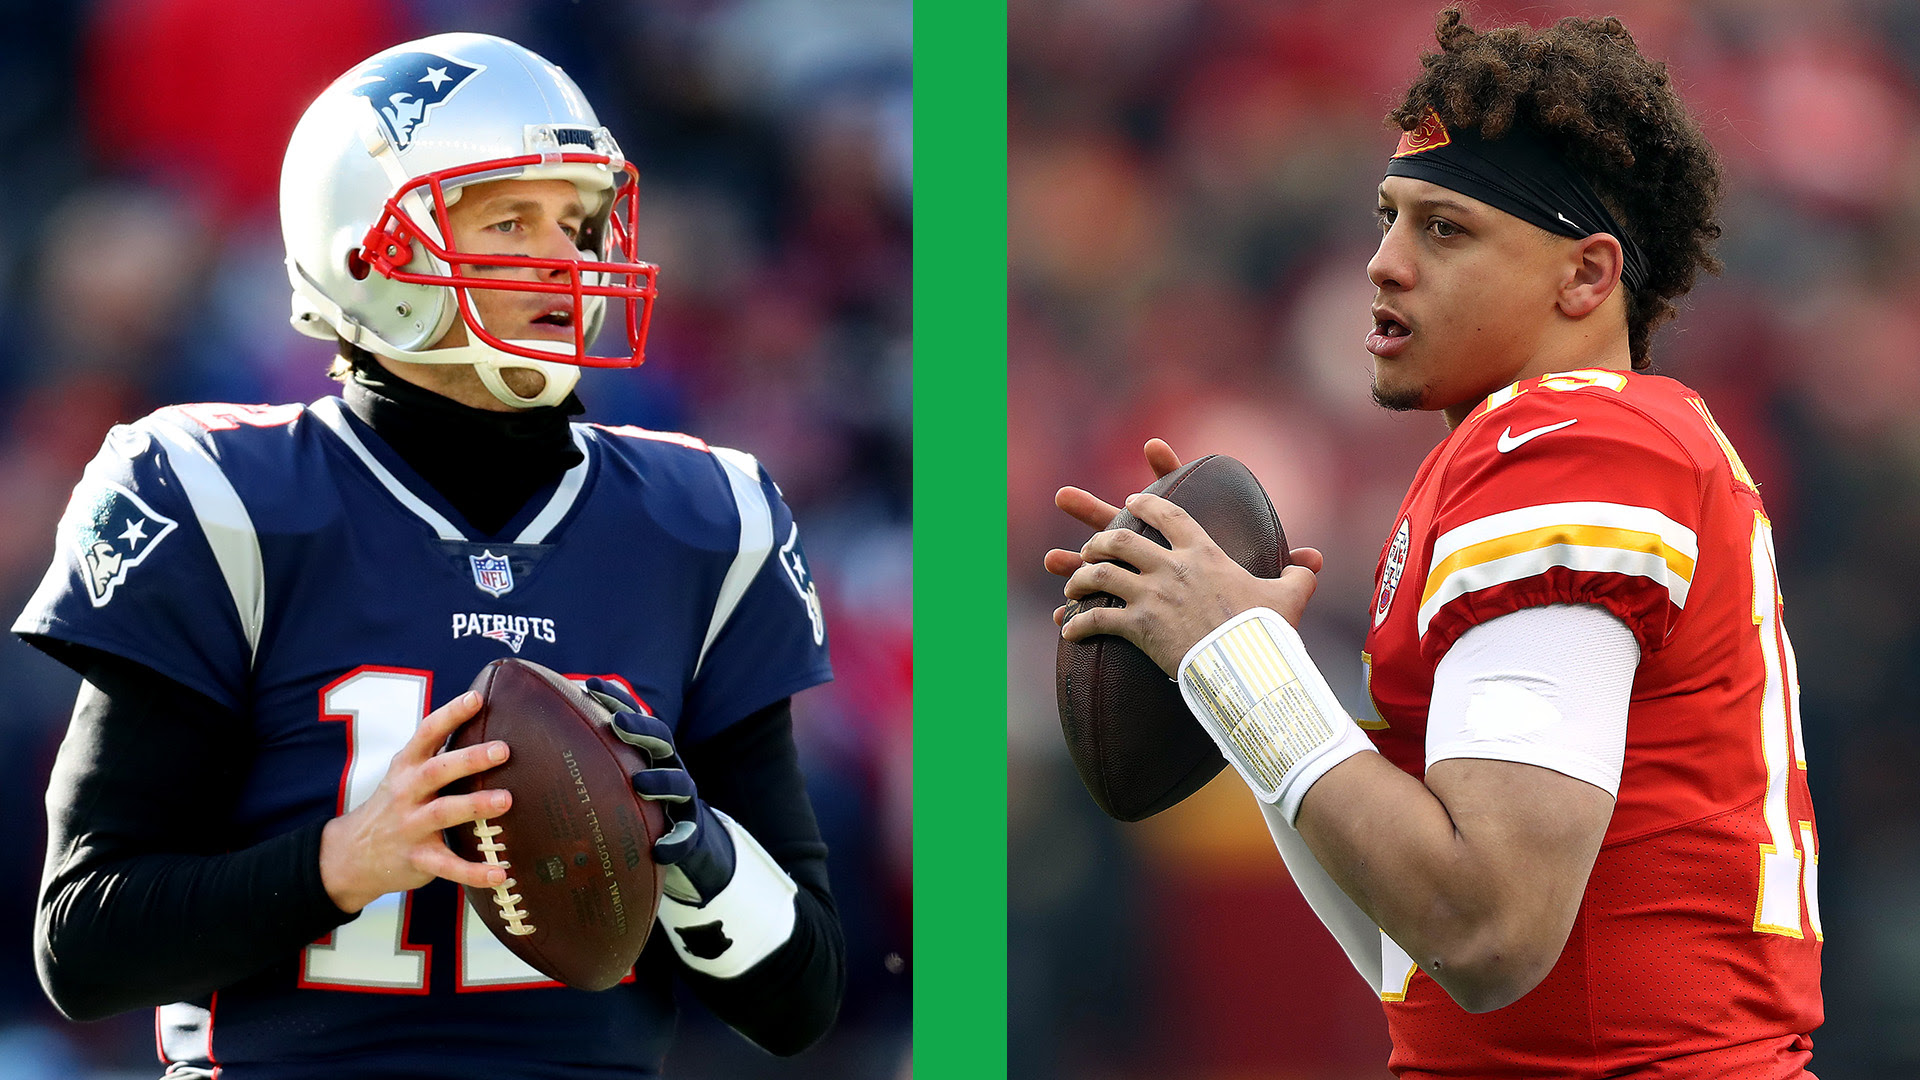 NFL playoffs 2019: Patrick Mahomes vs. Tom Brady  NFL  Sporting News